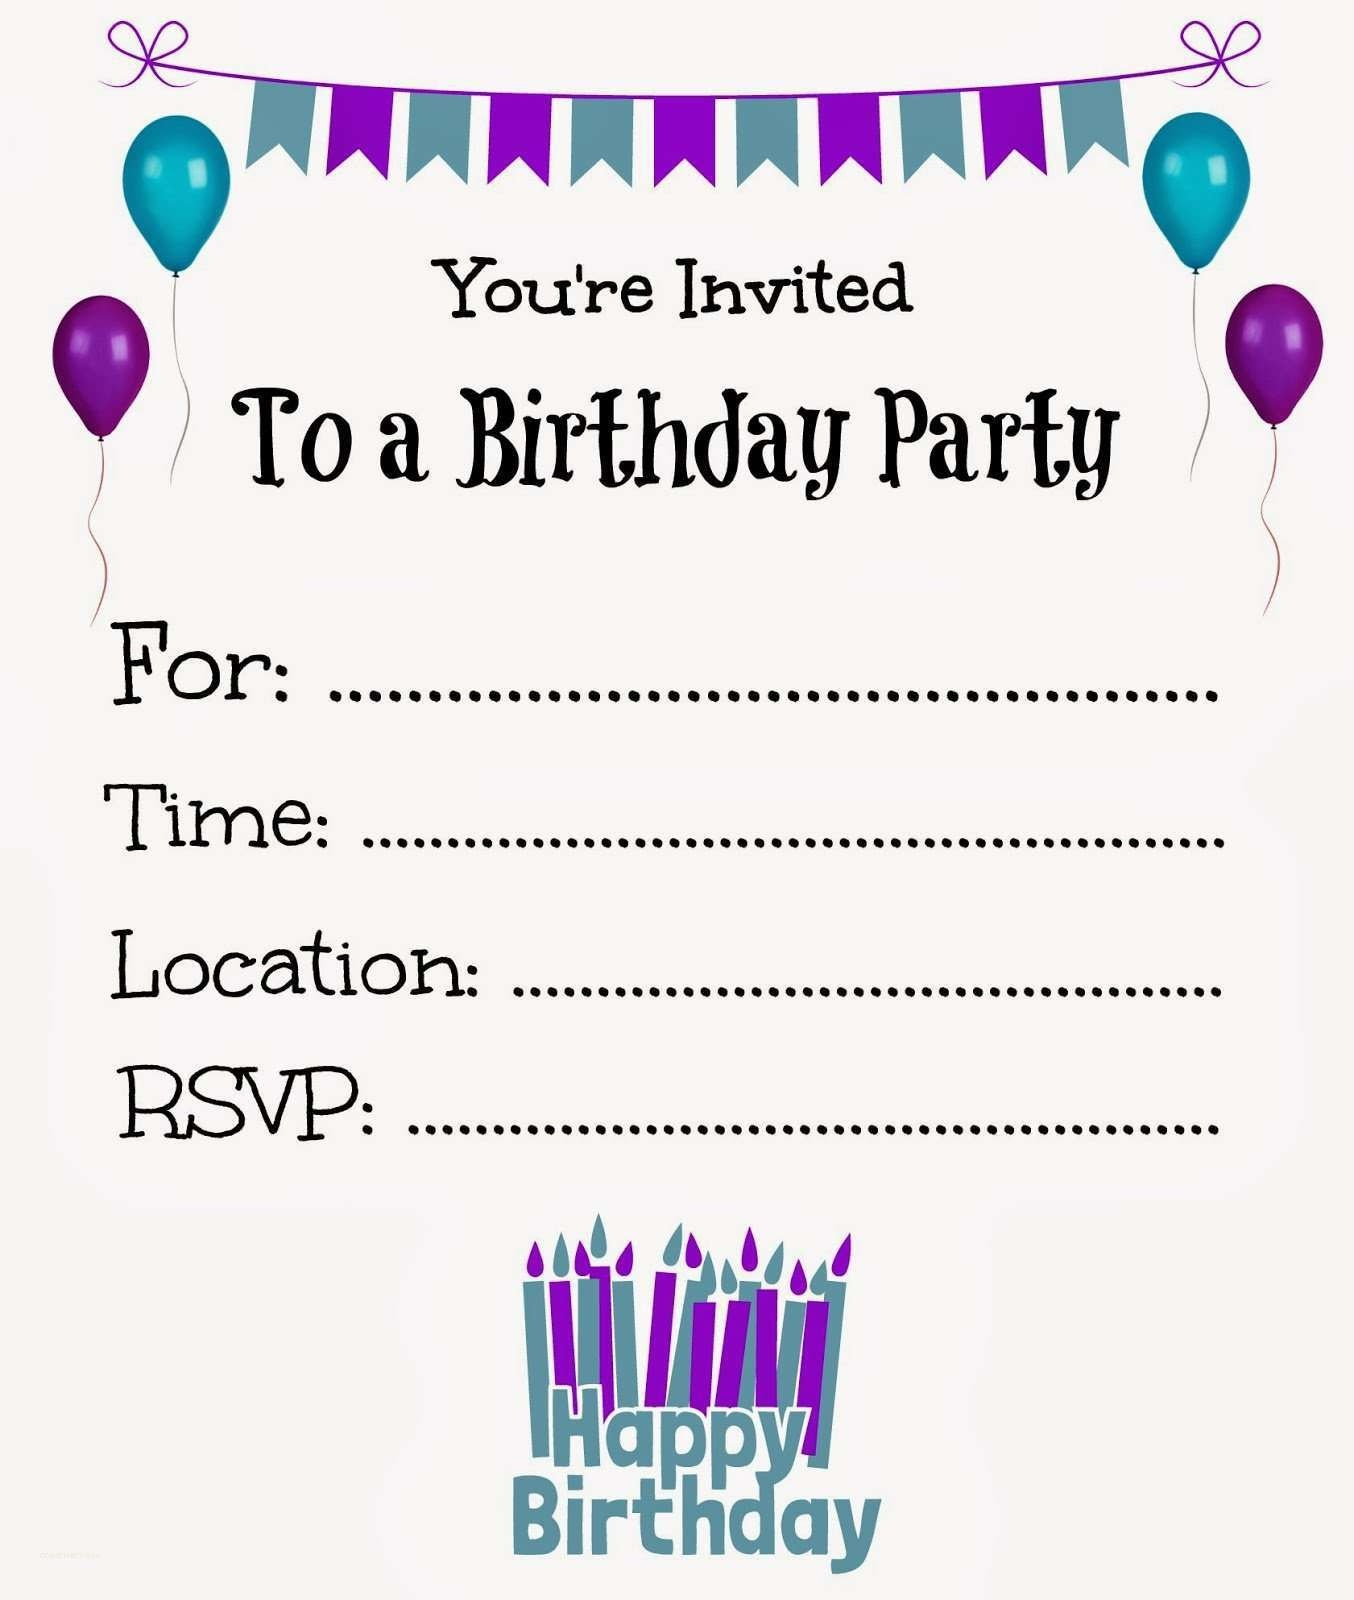 New Free Online Printable Birthday Party Invitations | Holiday - Free Printable Birthday Invitations For Him